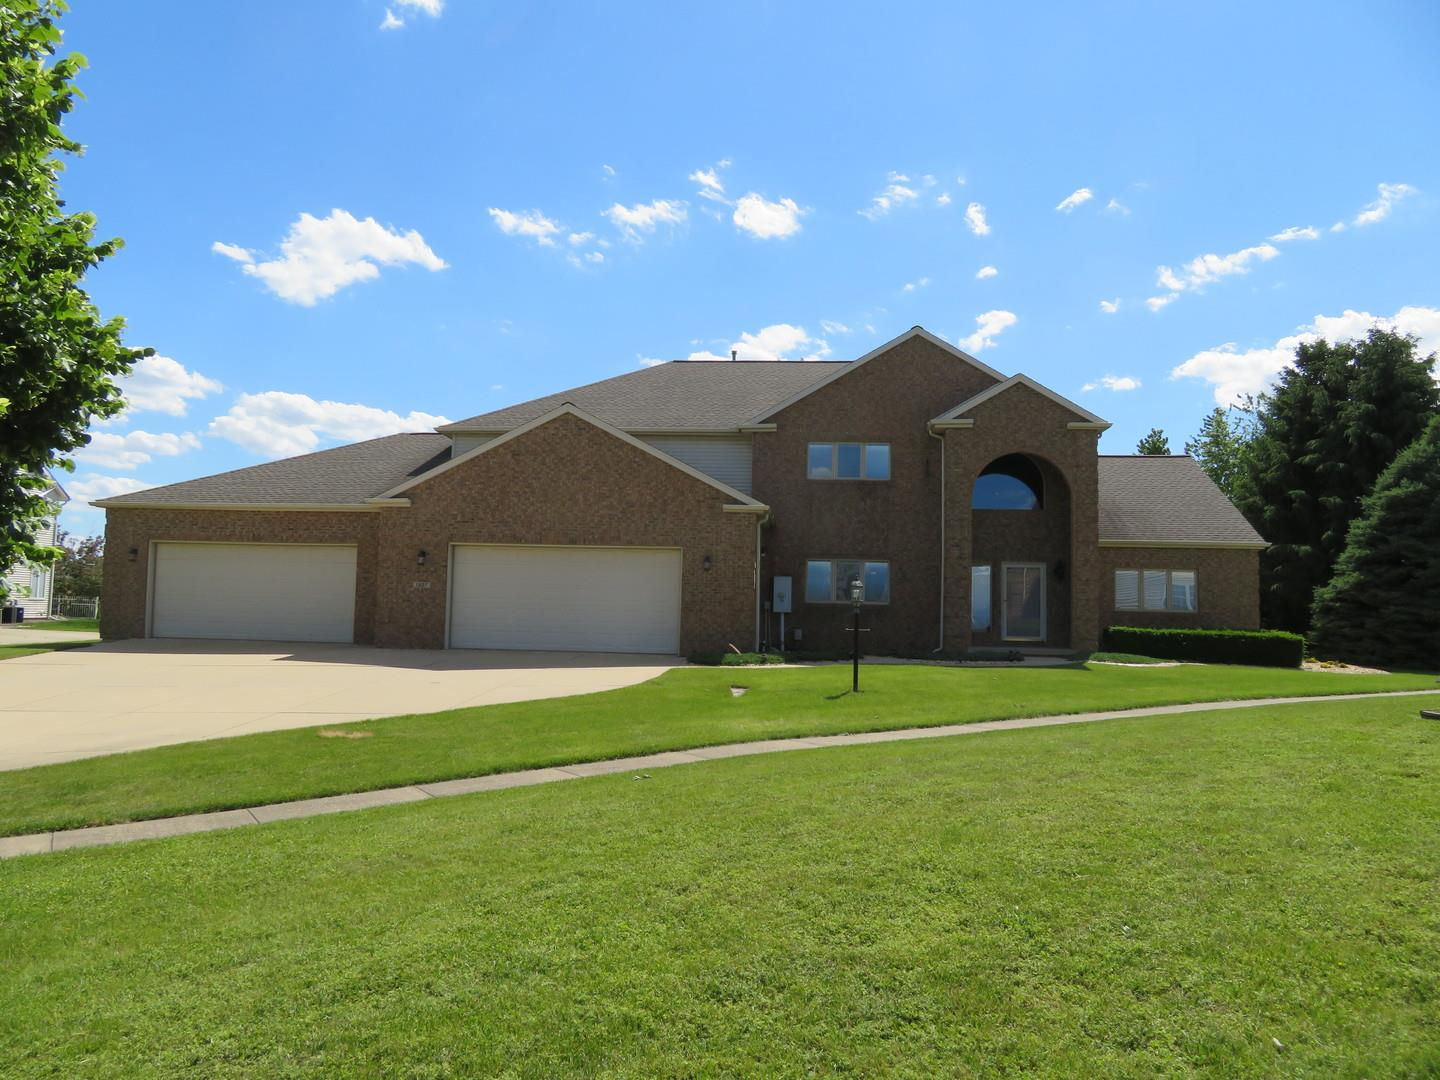 1807 Foxborough Court, Champaign, IL 61822 - #: 10629493